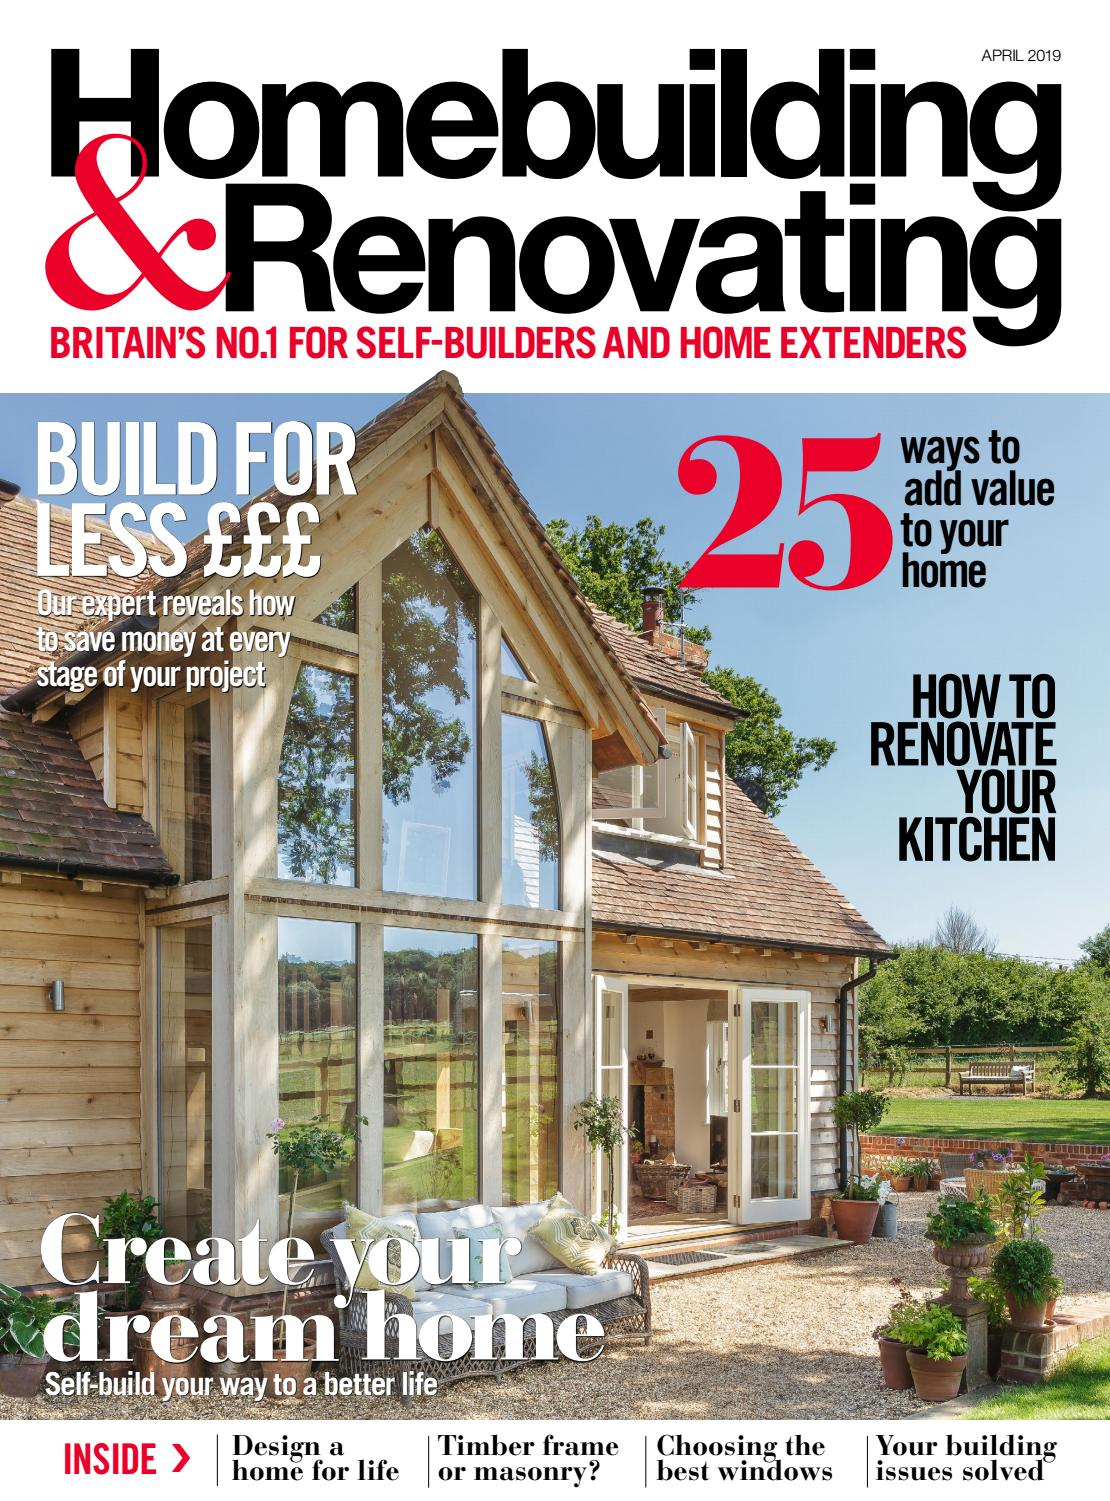 Homebuilding Renovating: Homebuilding & Renovating 148 (Sampler) By Future PLC